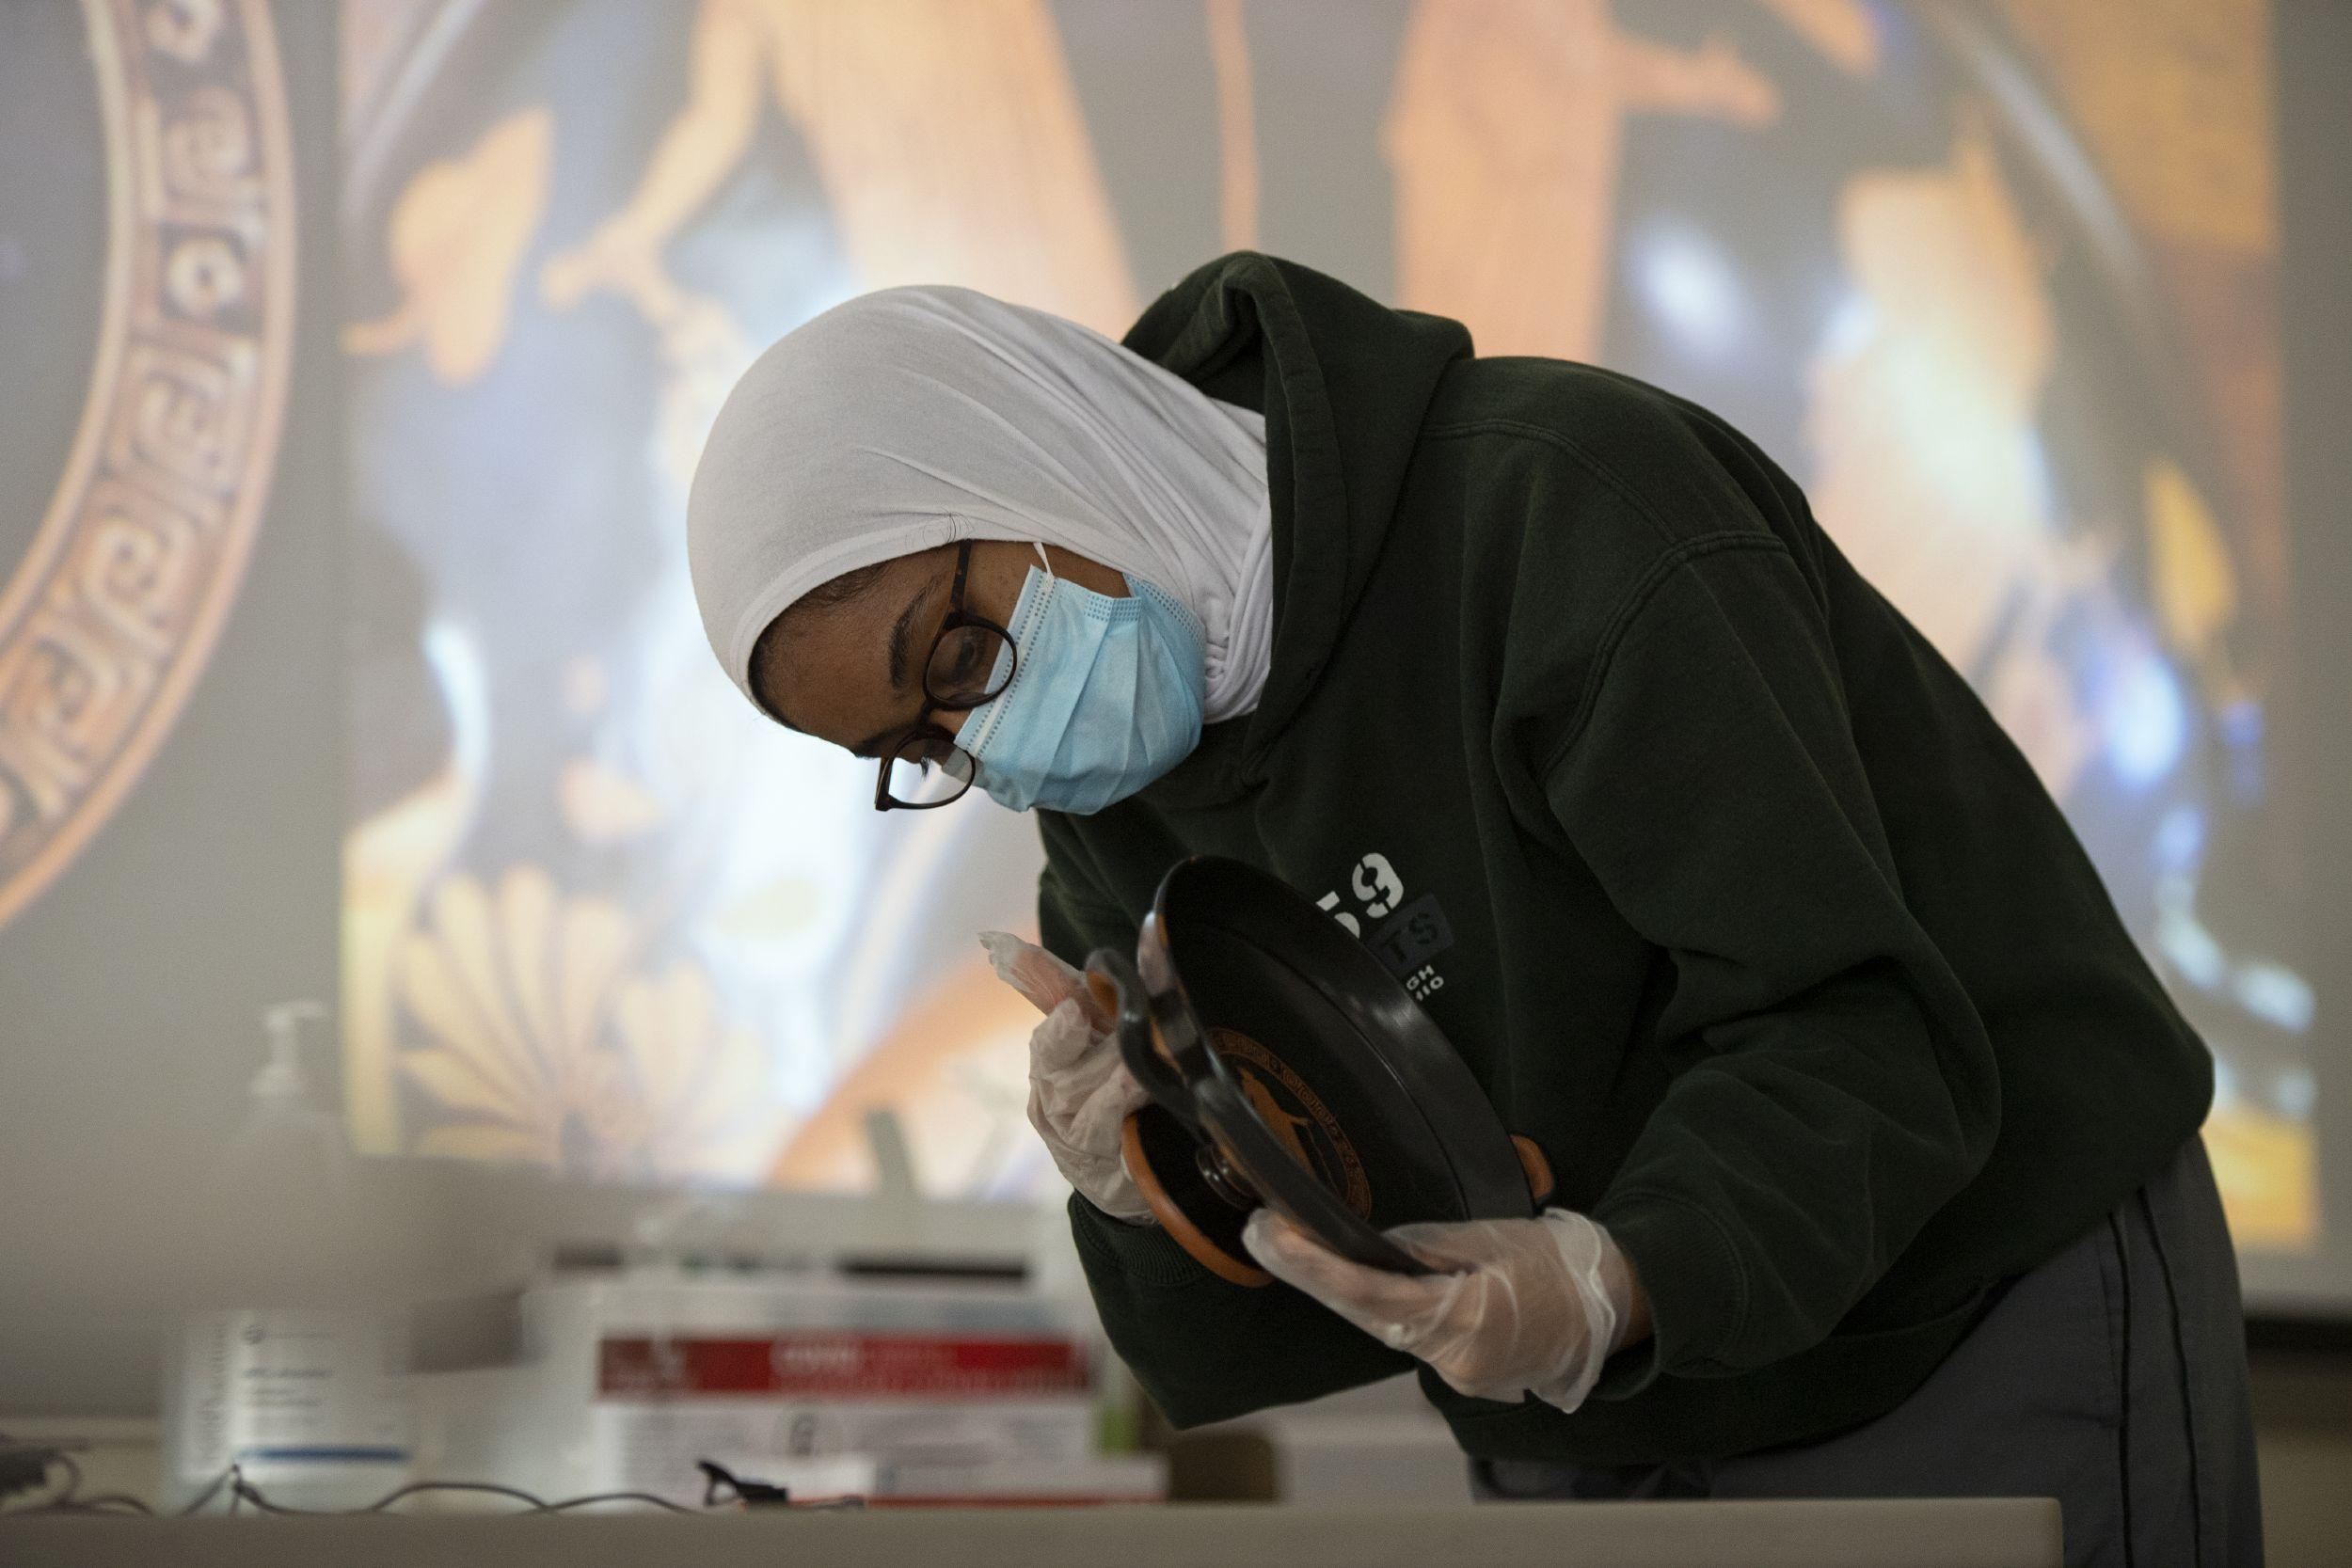 a student wearing gloves inspects a kylix